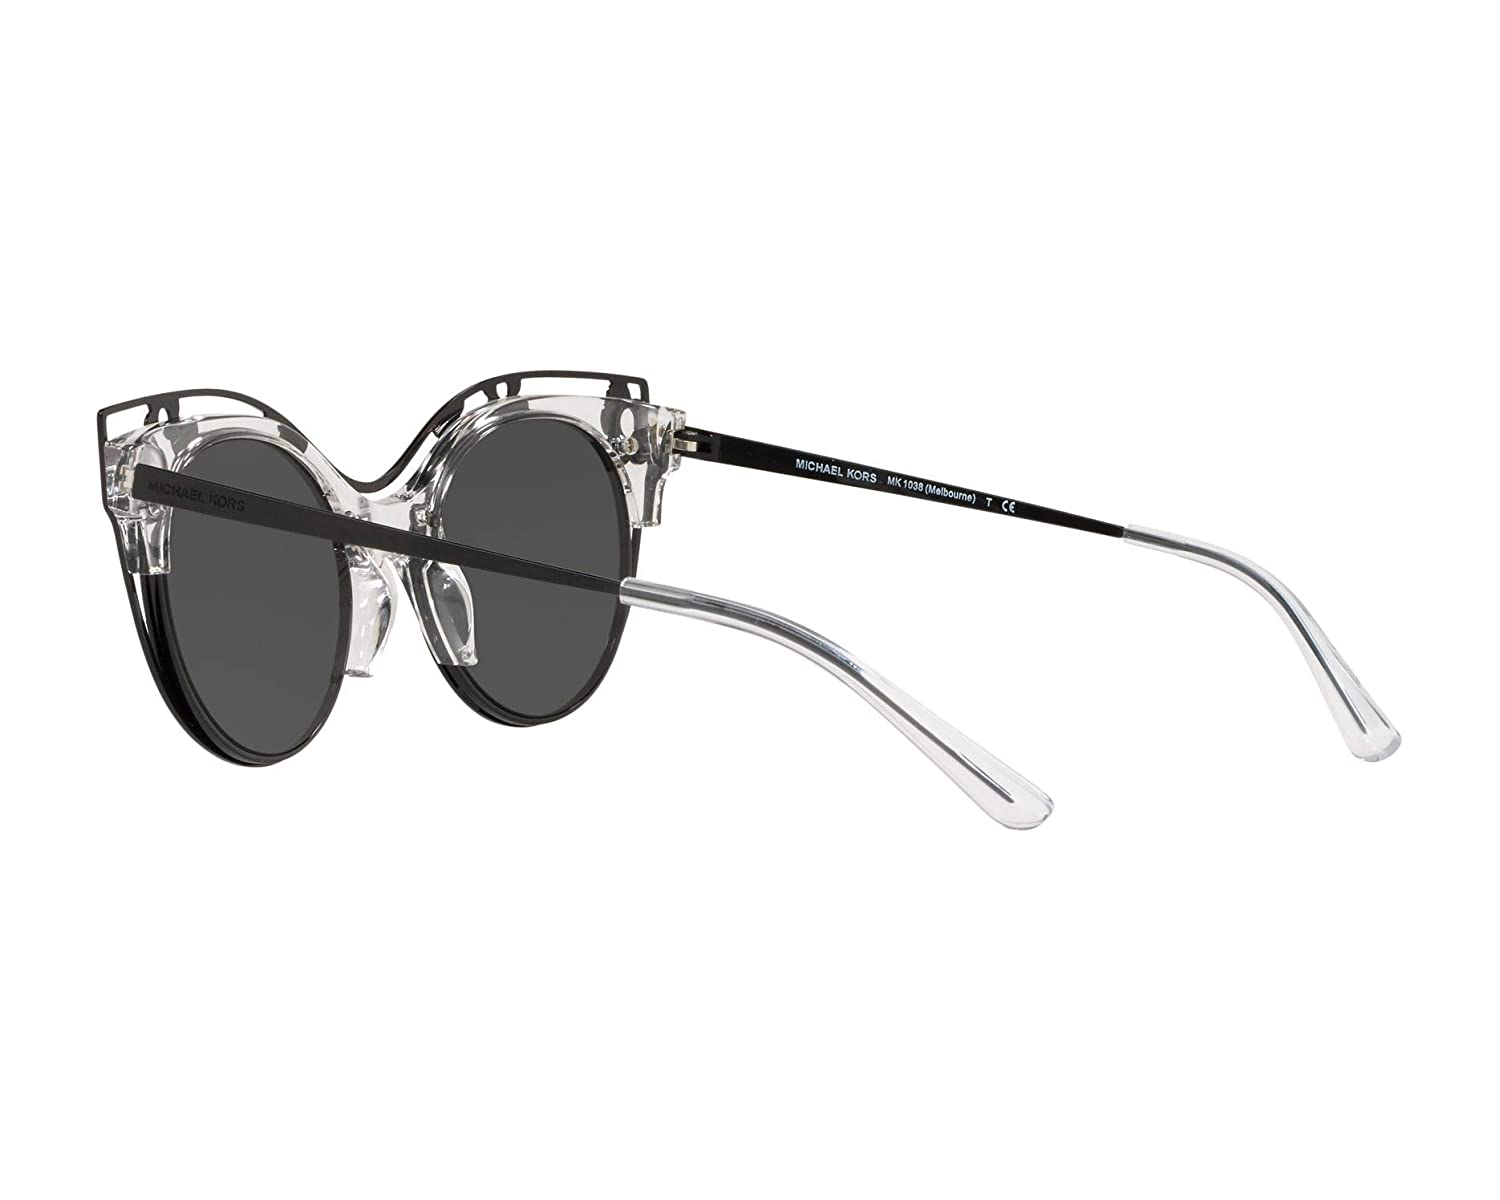 ac594d22b8 Amazon.com  Michael Kors Women s Melborne 0MK1038 52mm Crystal Clear  Injected Grey Solid One Size  Clothing